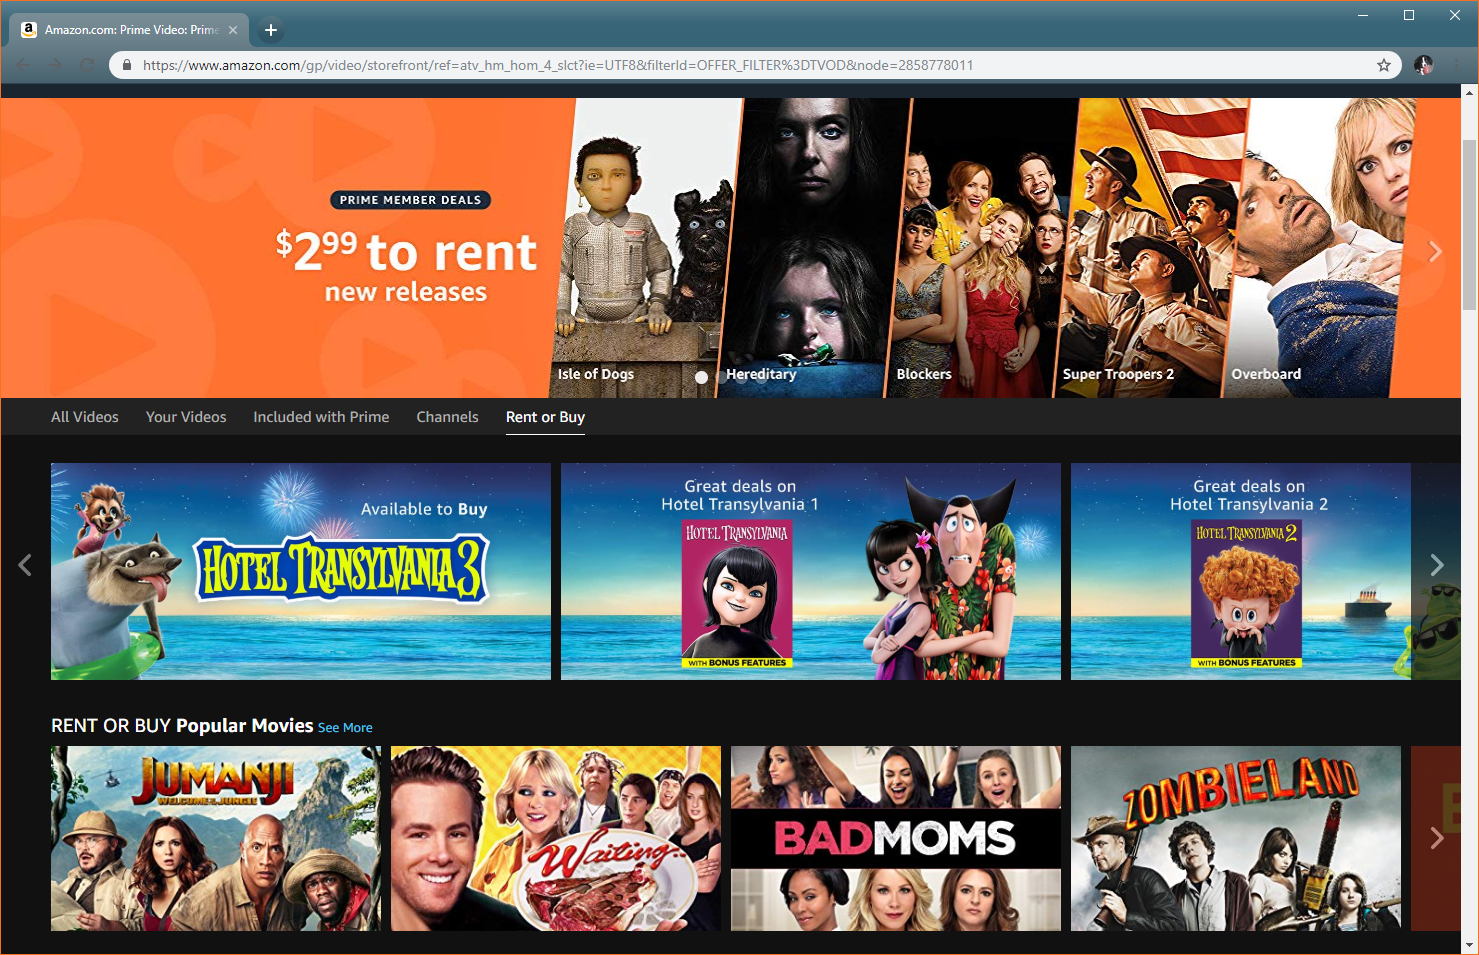 A screenshot of Amazon Video showing movies to rent or buy.